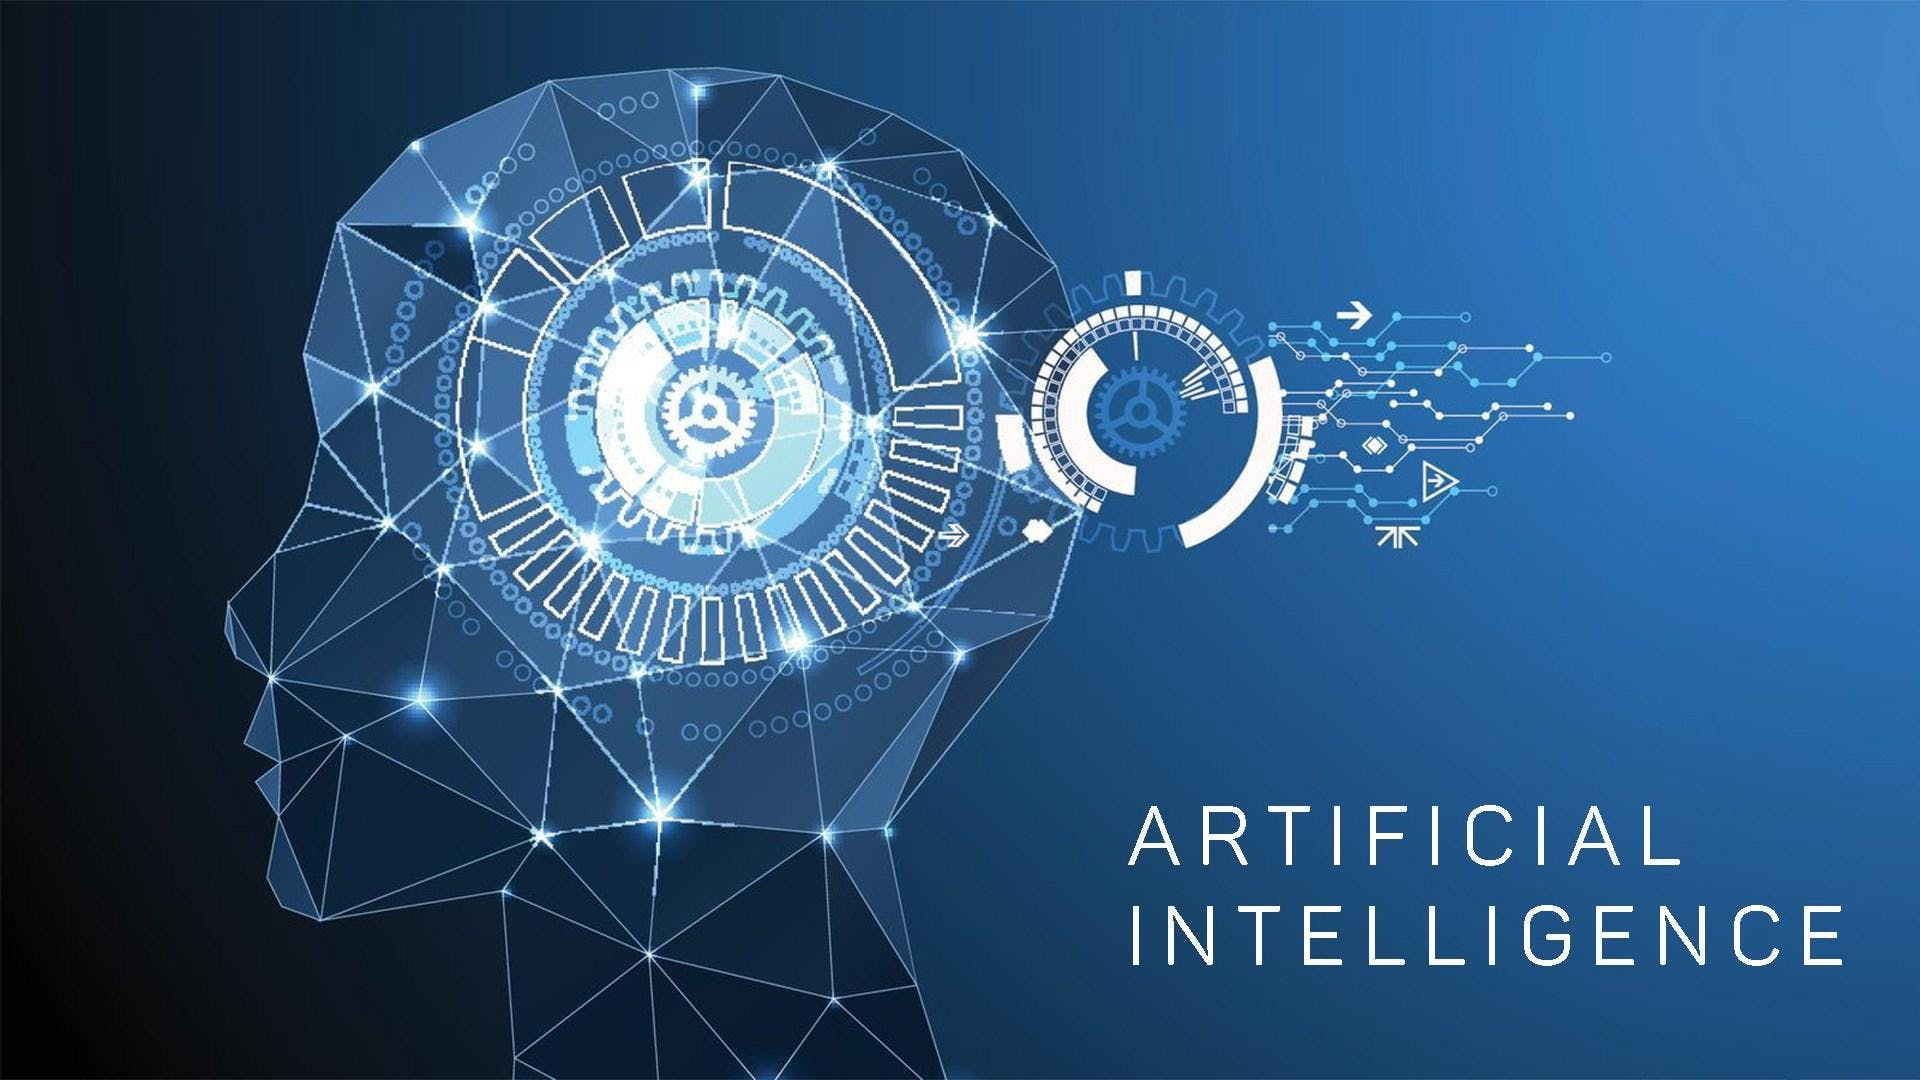 How To Develop a Successful Artificial Intelligence Tech Startup Business Today! - New York - Entrepreneur - Workshop - Hackathon - Bootcamp - Virtual Class - Seminar - Training - Lecture - Webinar - Conference - Course